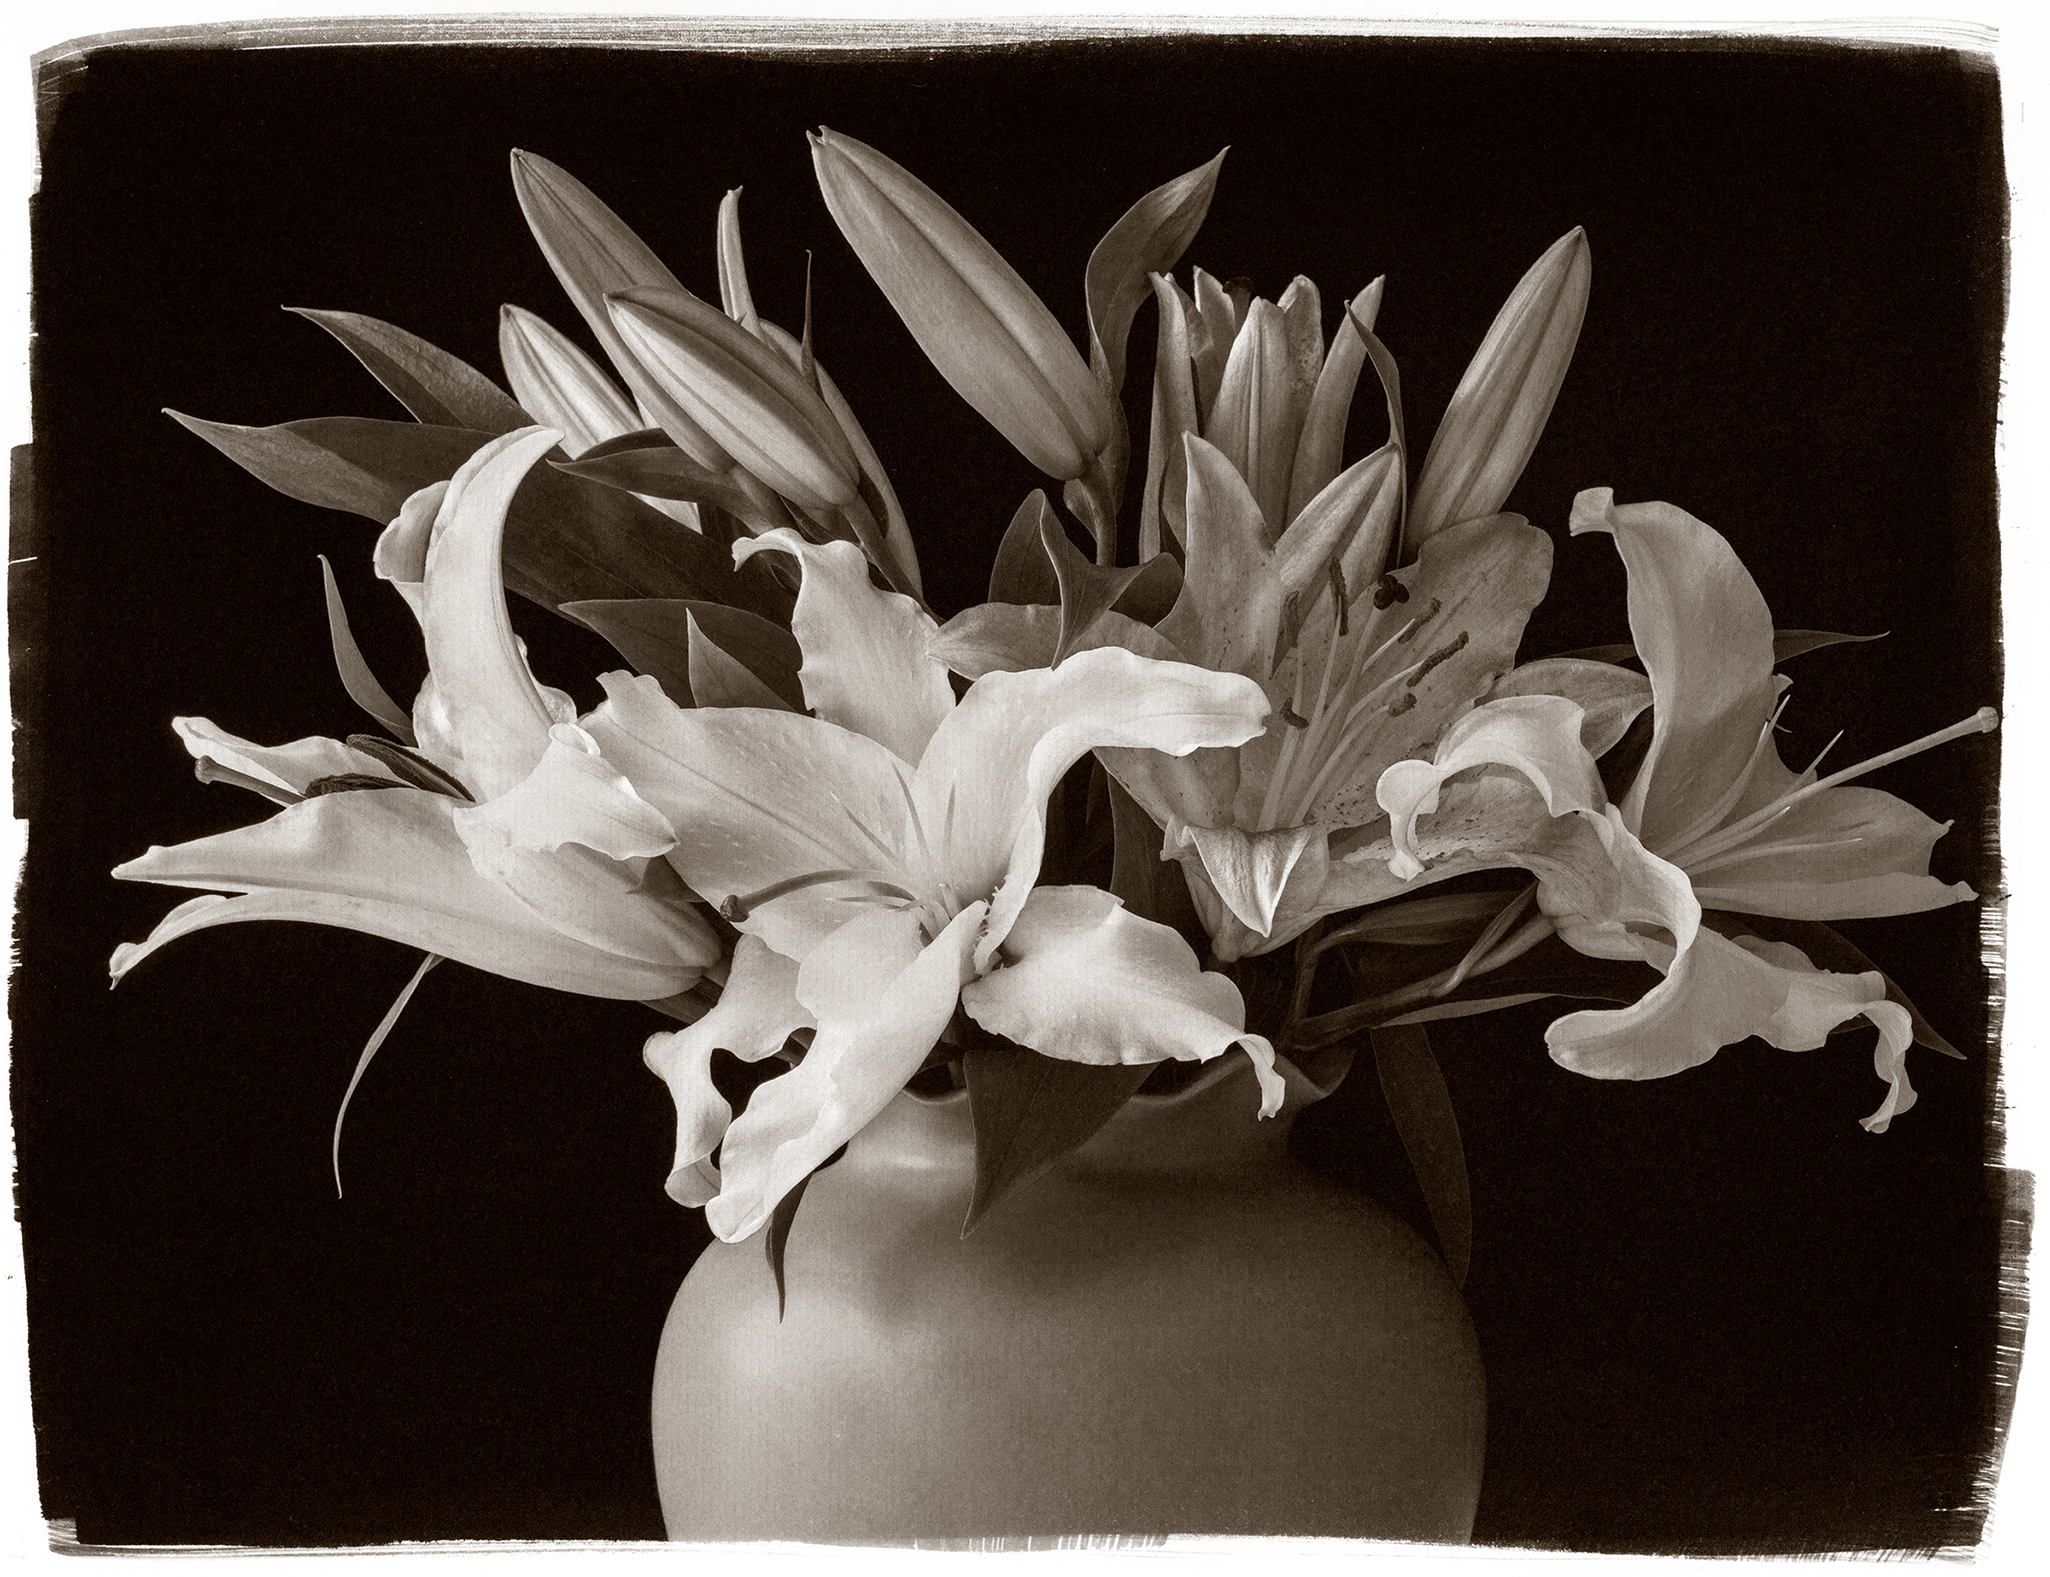 Carnochan, CONSIDER THE LILIES